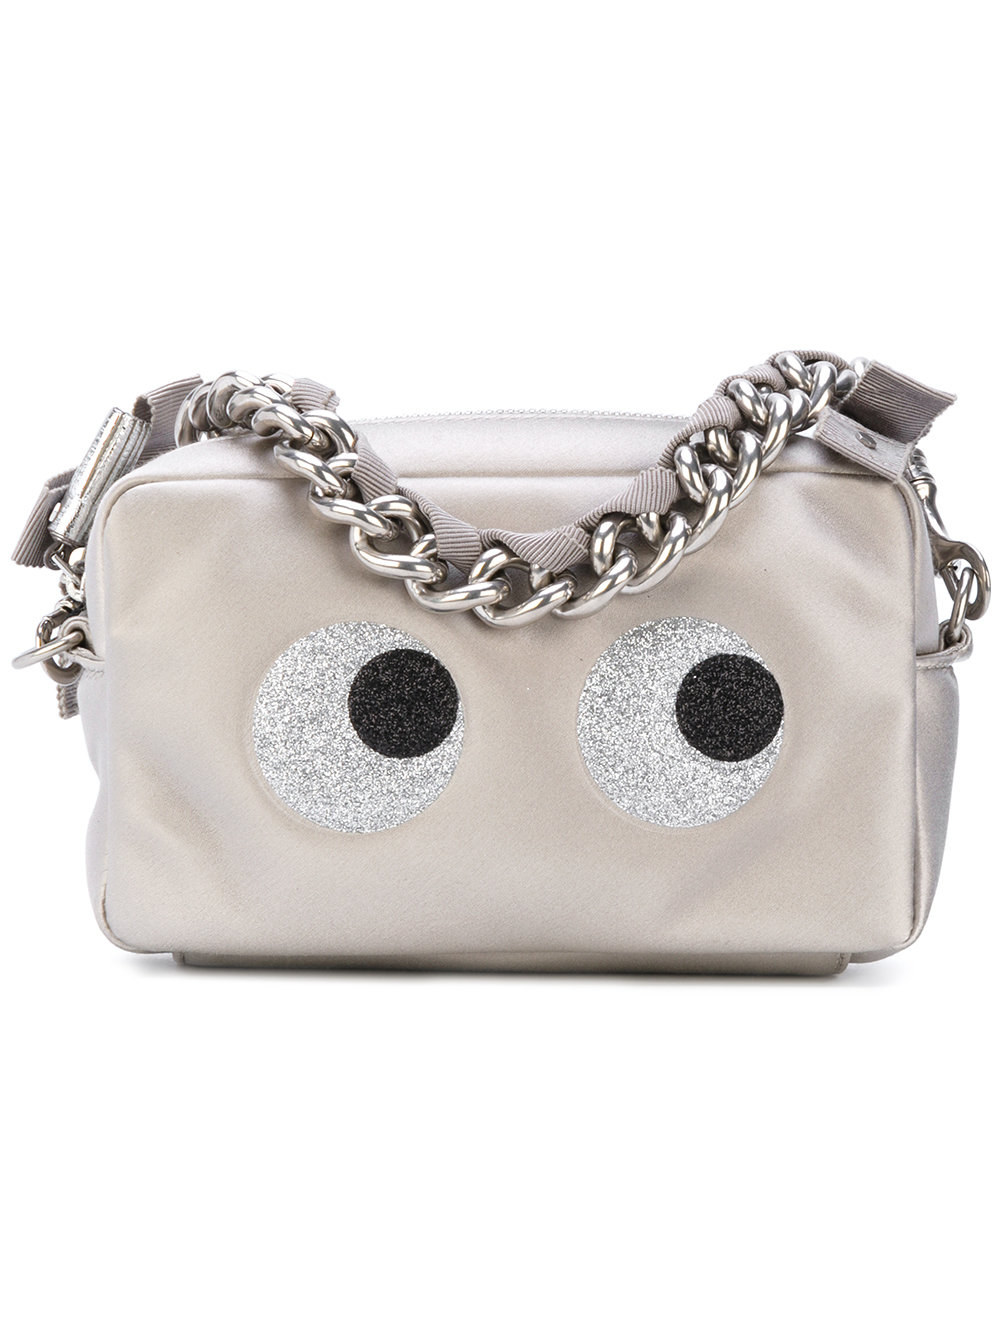 Anya Hindmach chain clutch glitter eyes in satin